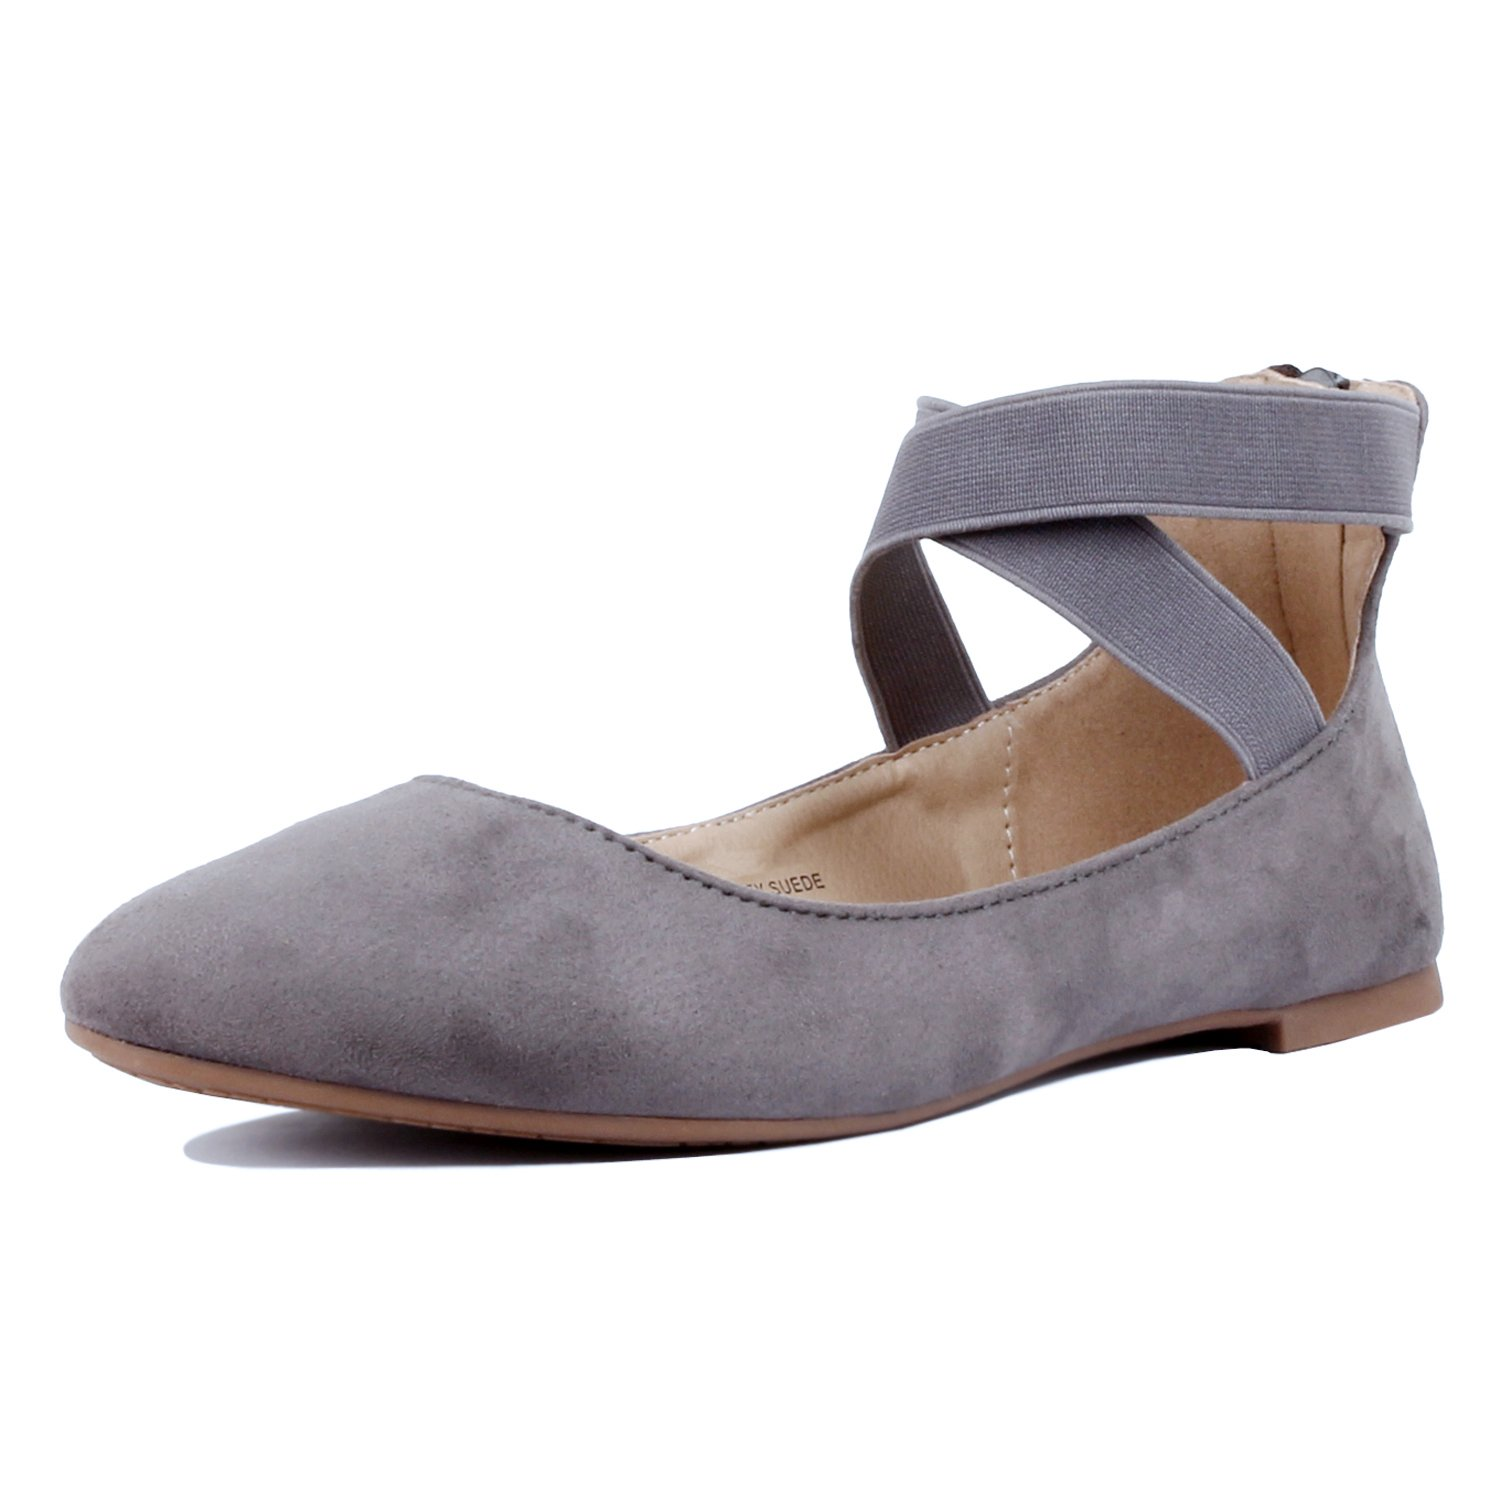 Guilty Shoes - Women's Classic Ballerina Flats - Elastic Crossing Straps - Comfort Stretchy Ballet-Flats, Grey Suede, 9